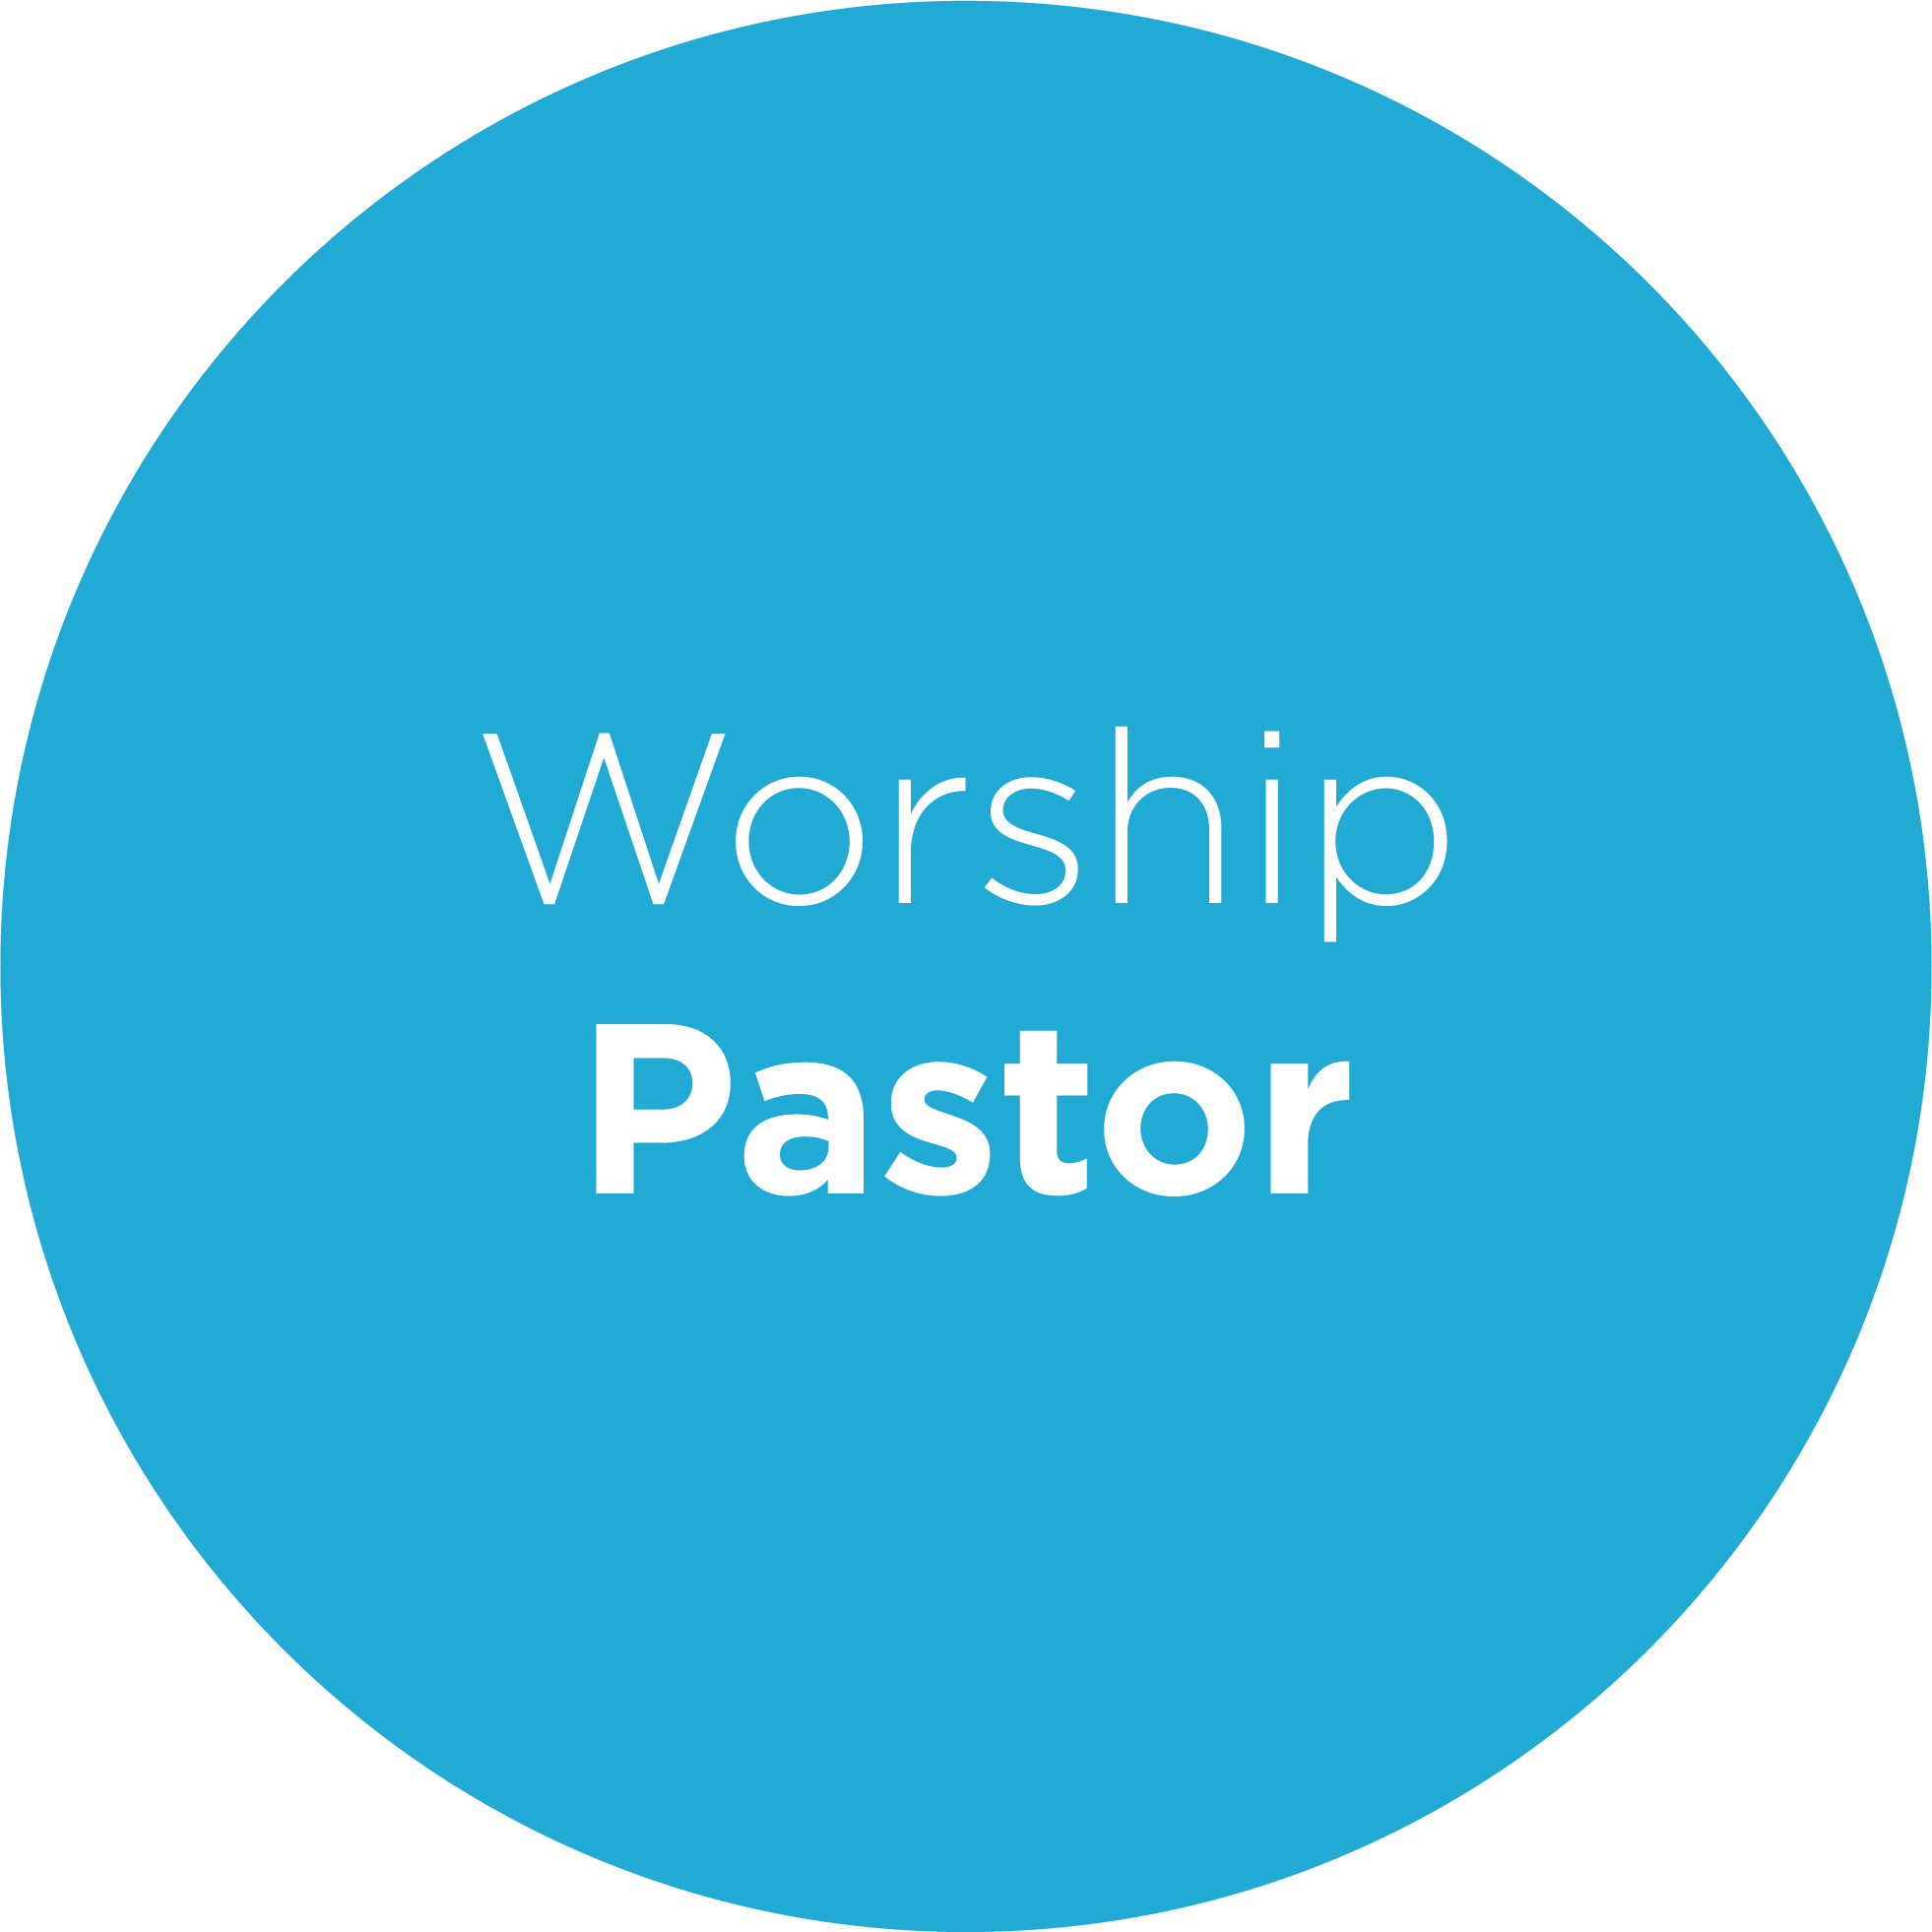 Worship Pastor Button.png